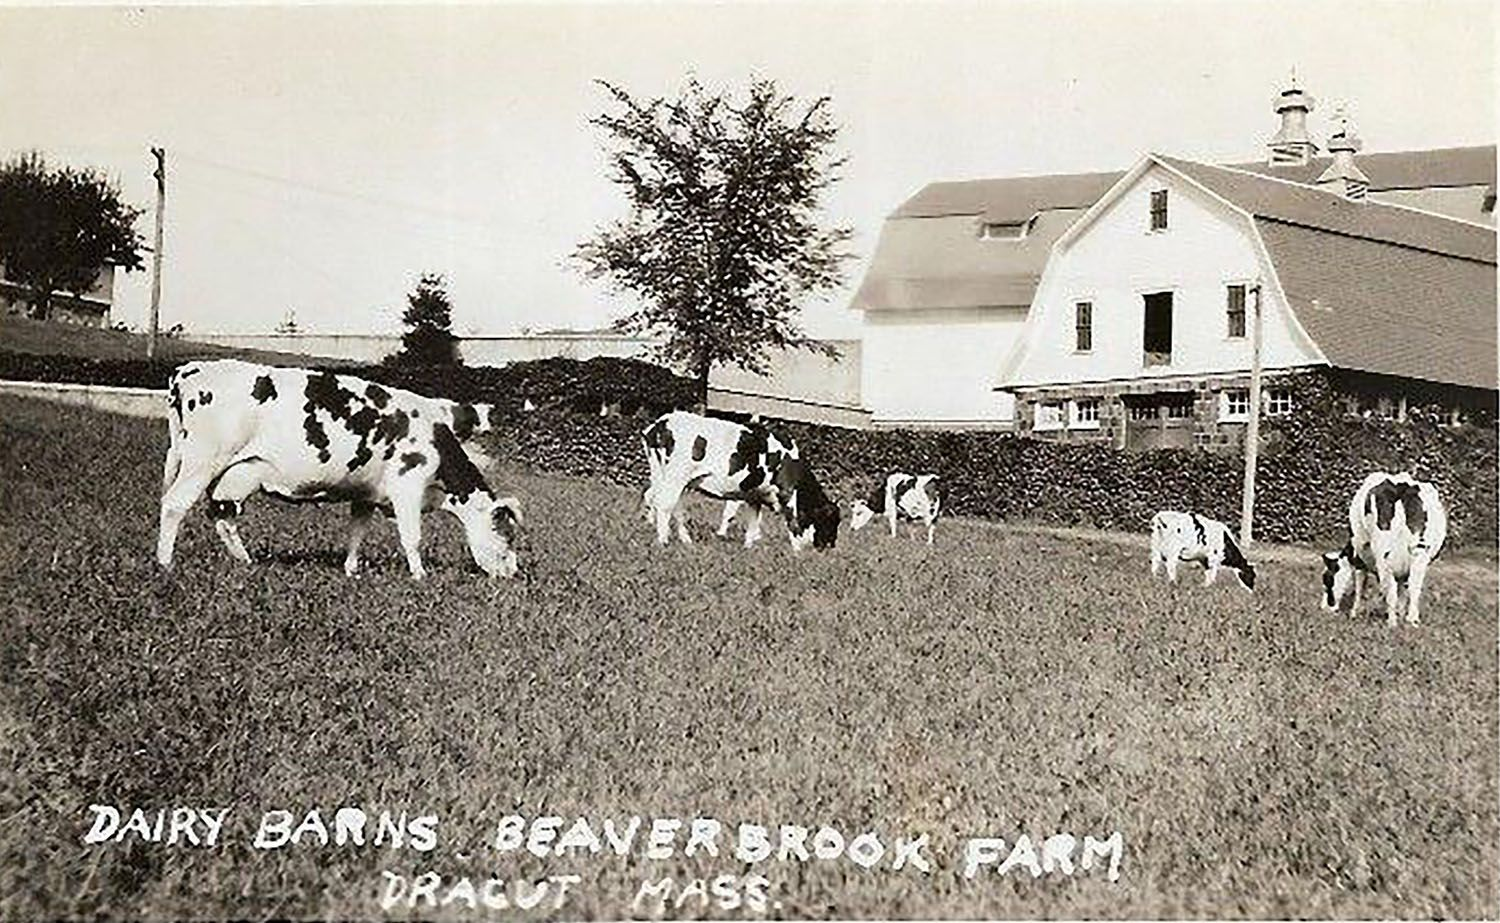 Beaverbrook Farms - edit.jpg